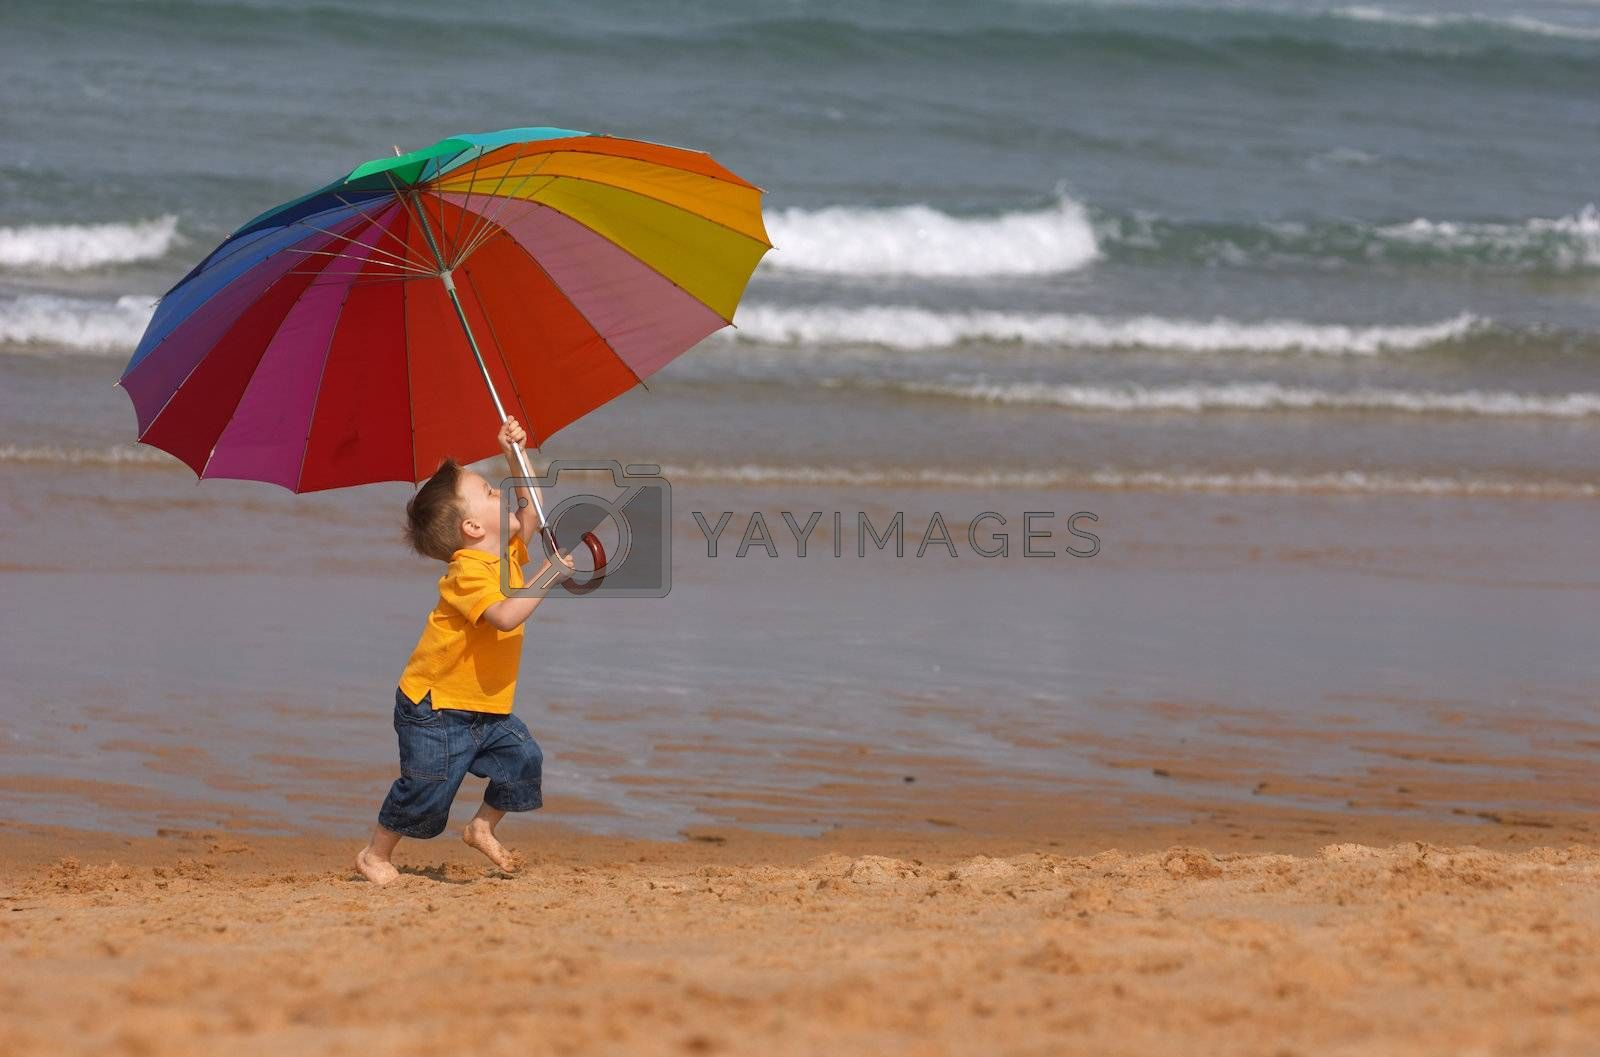 Do not depend on weather conditions. Cute small boy with big brightly colored umbrella having fun on the beach